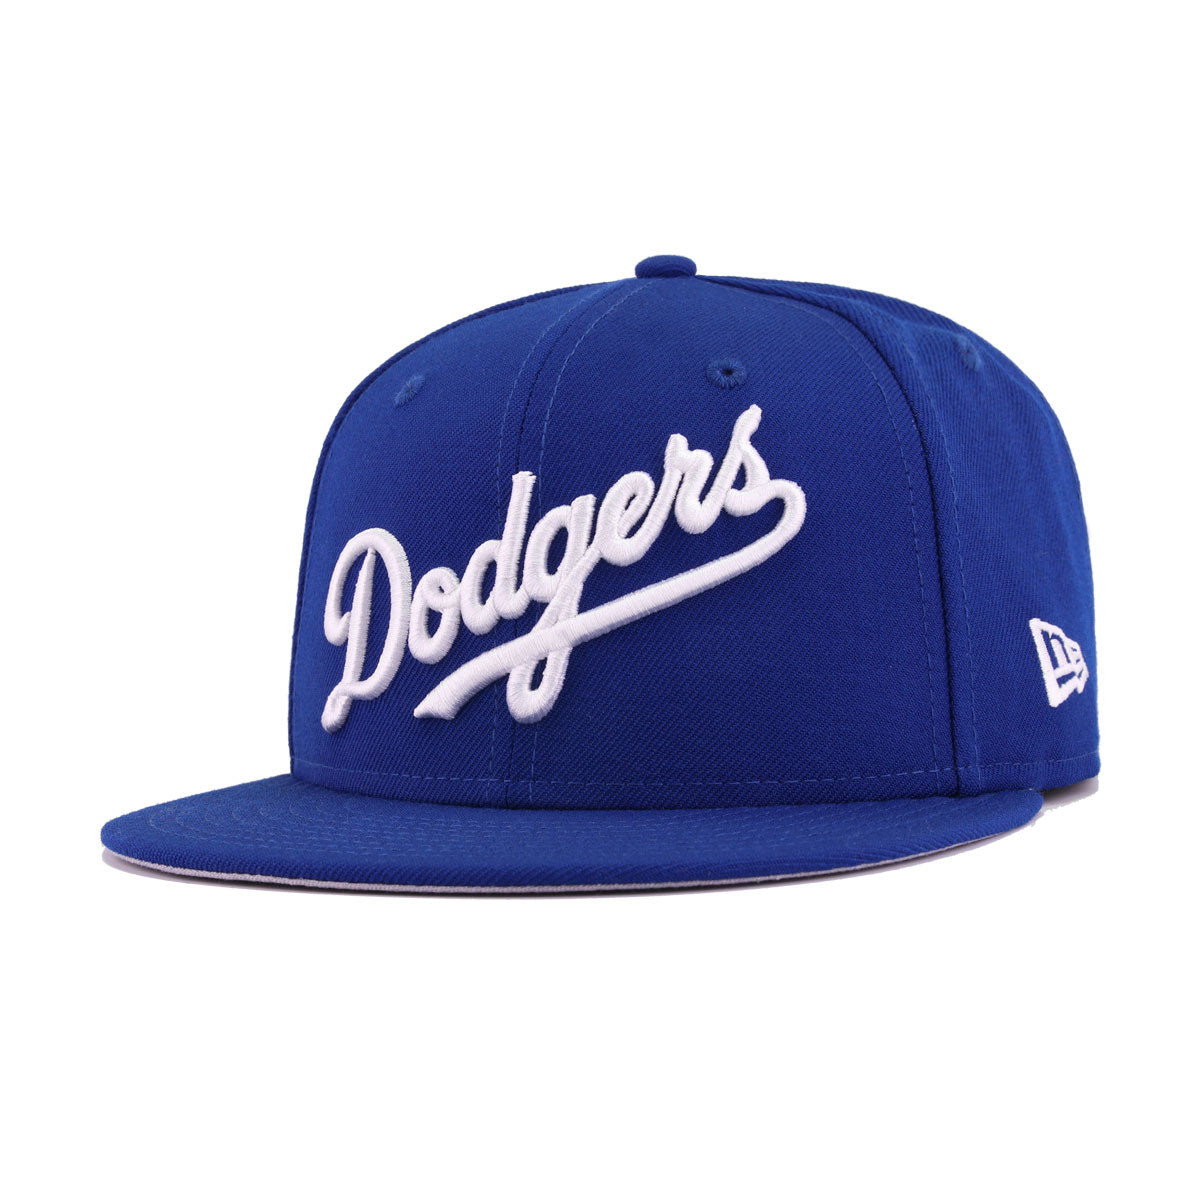 Los Angeles Dodgers Light Royal Blue White Wordmark Logo 50th Anniversary New Era 9Fifty Snapback